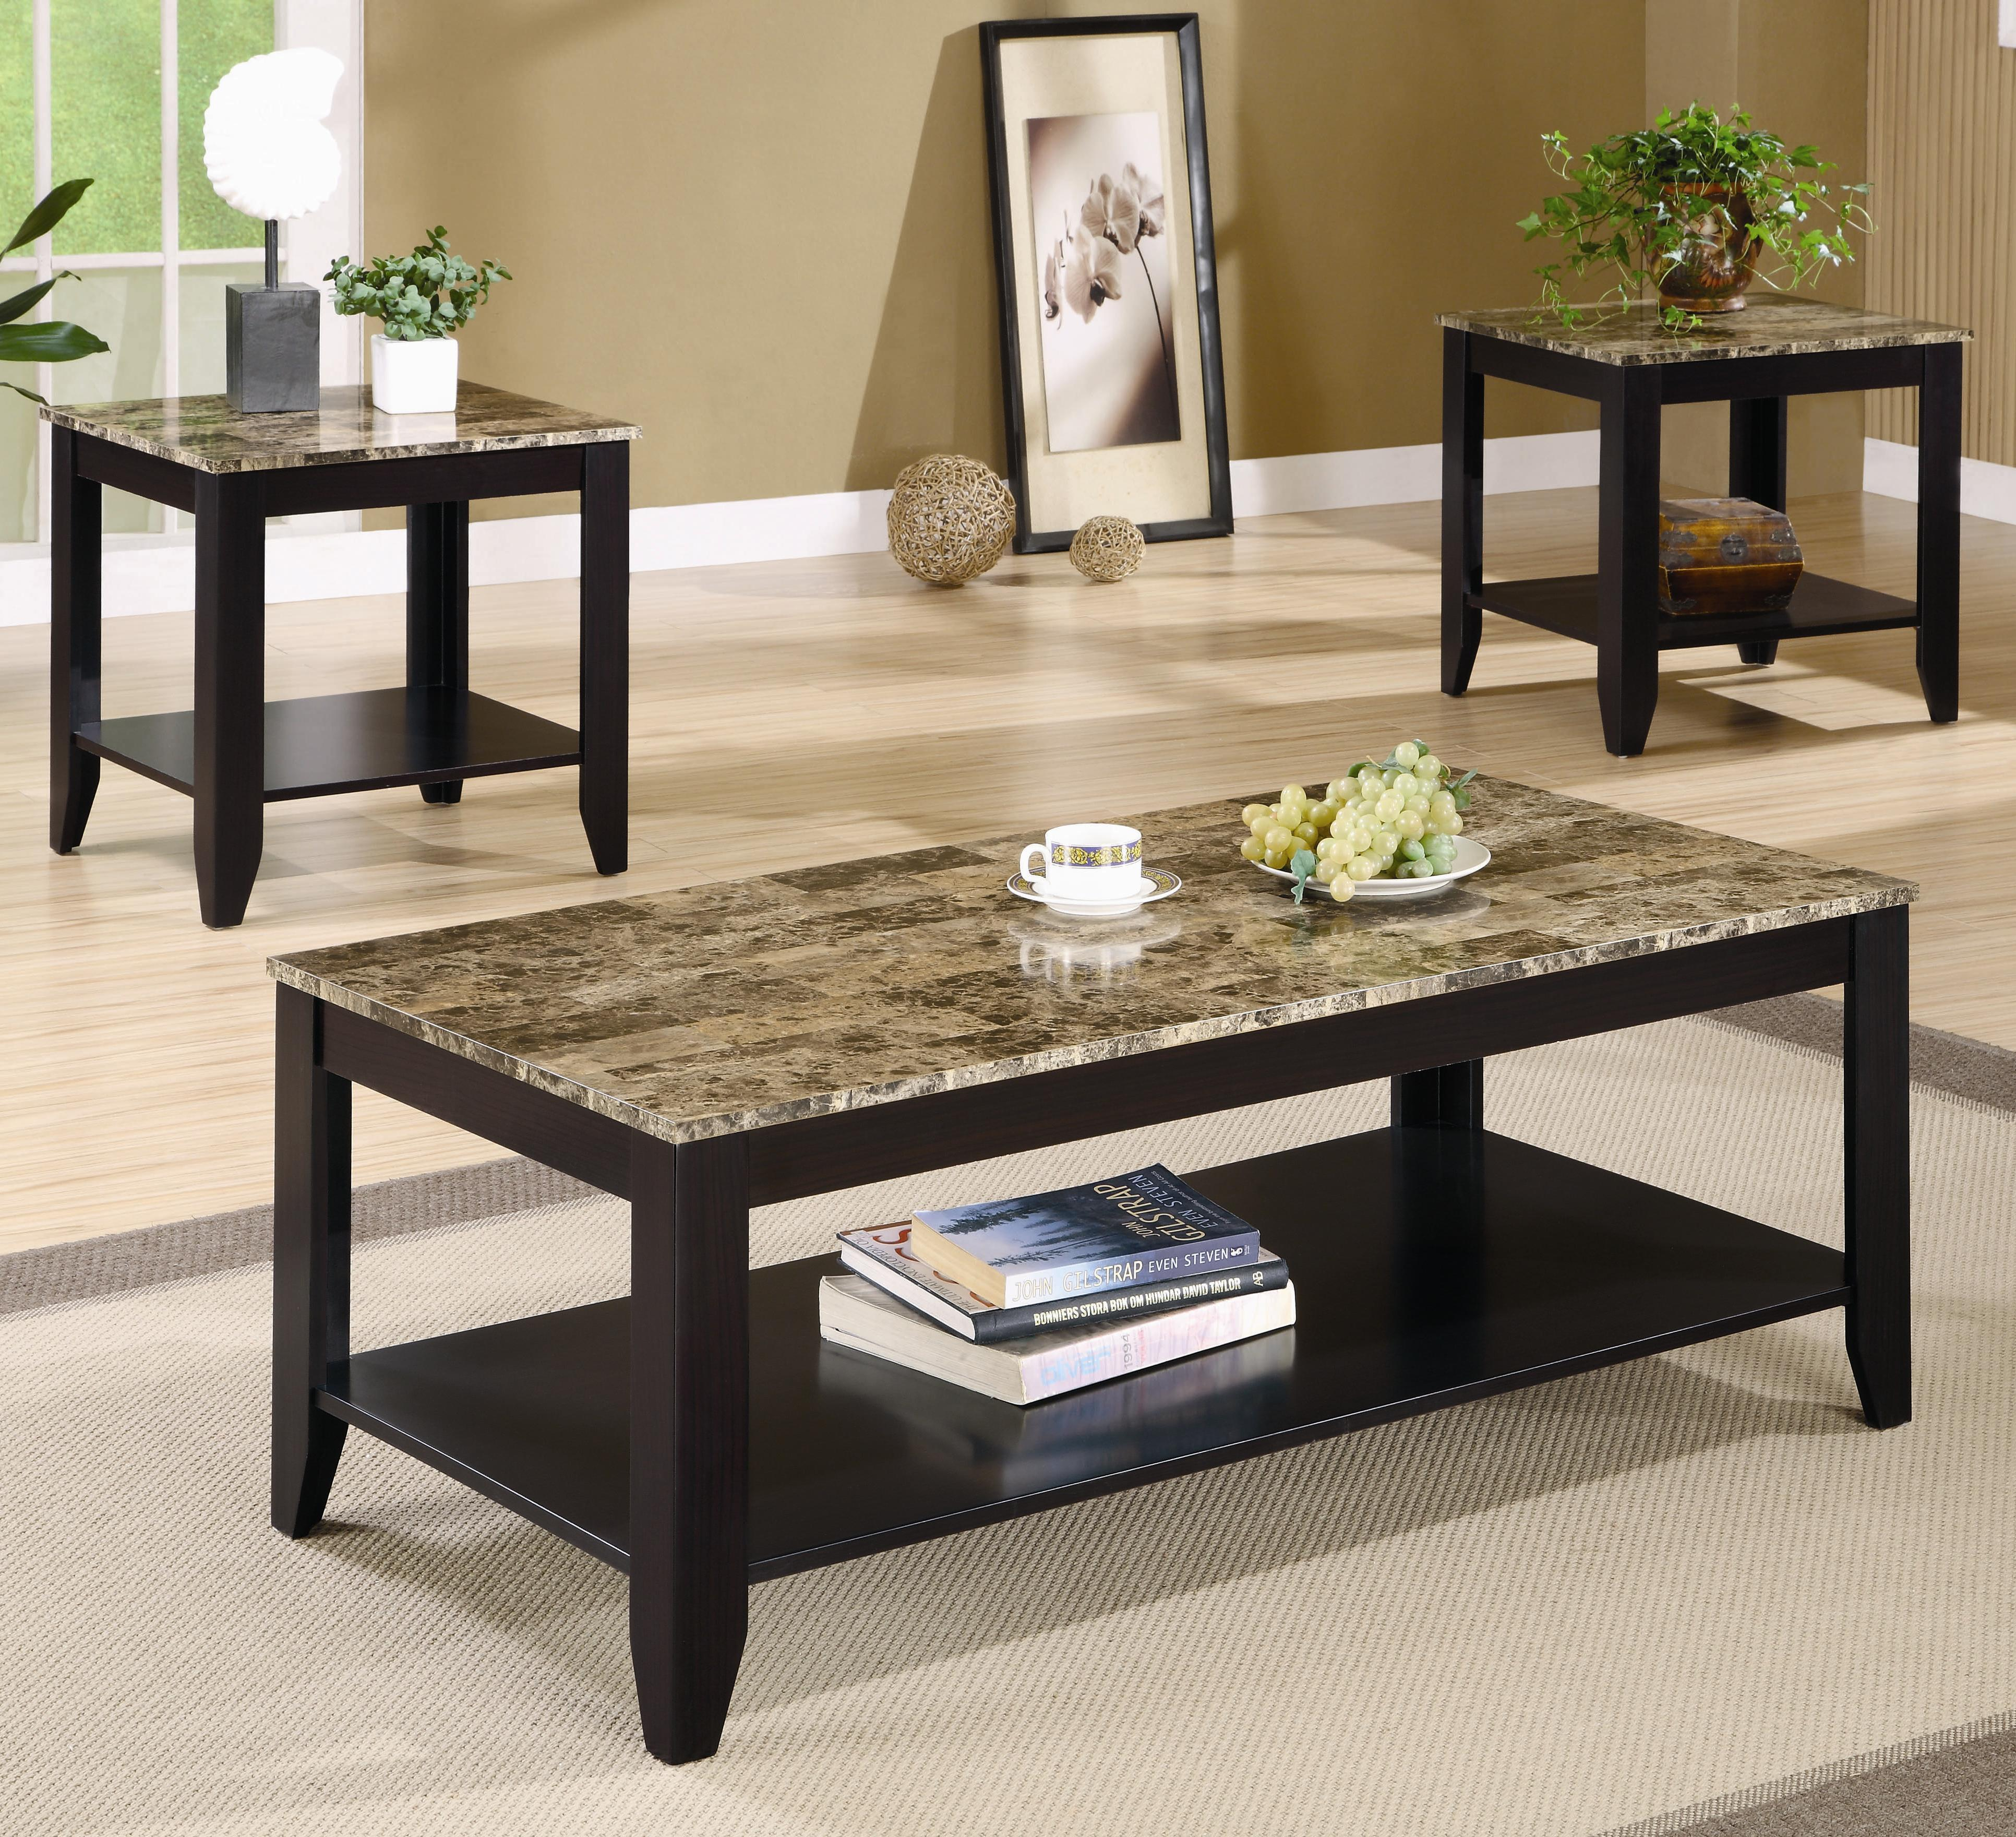 Coaster Occasional Table Sets 700155 3 Piece Occasional Table Set throughout Living Room Table Set